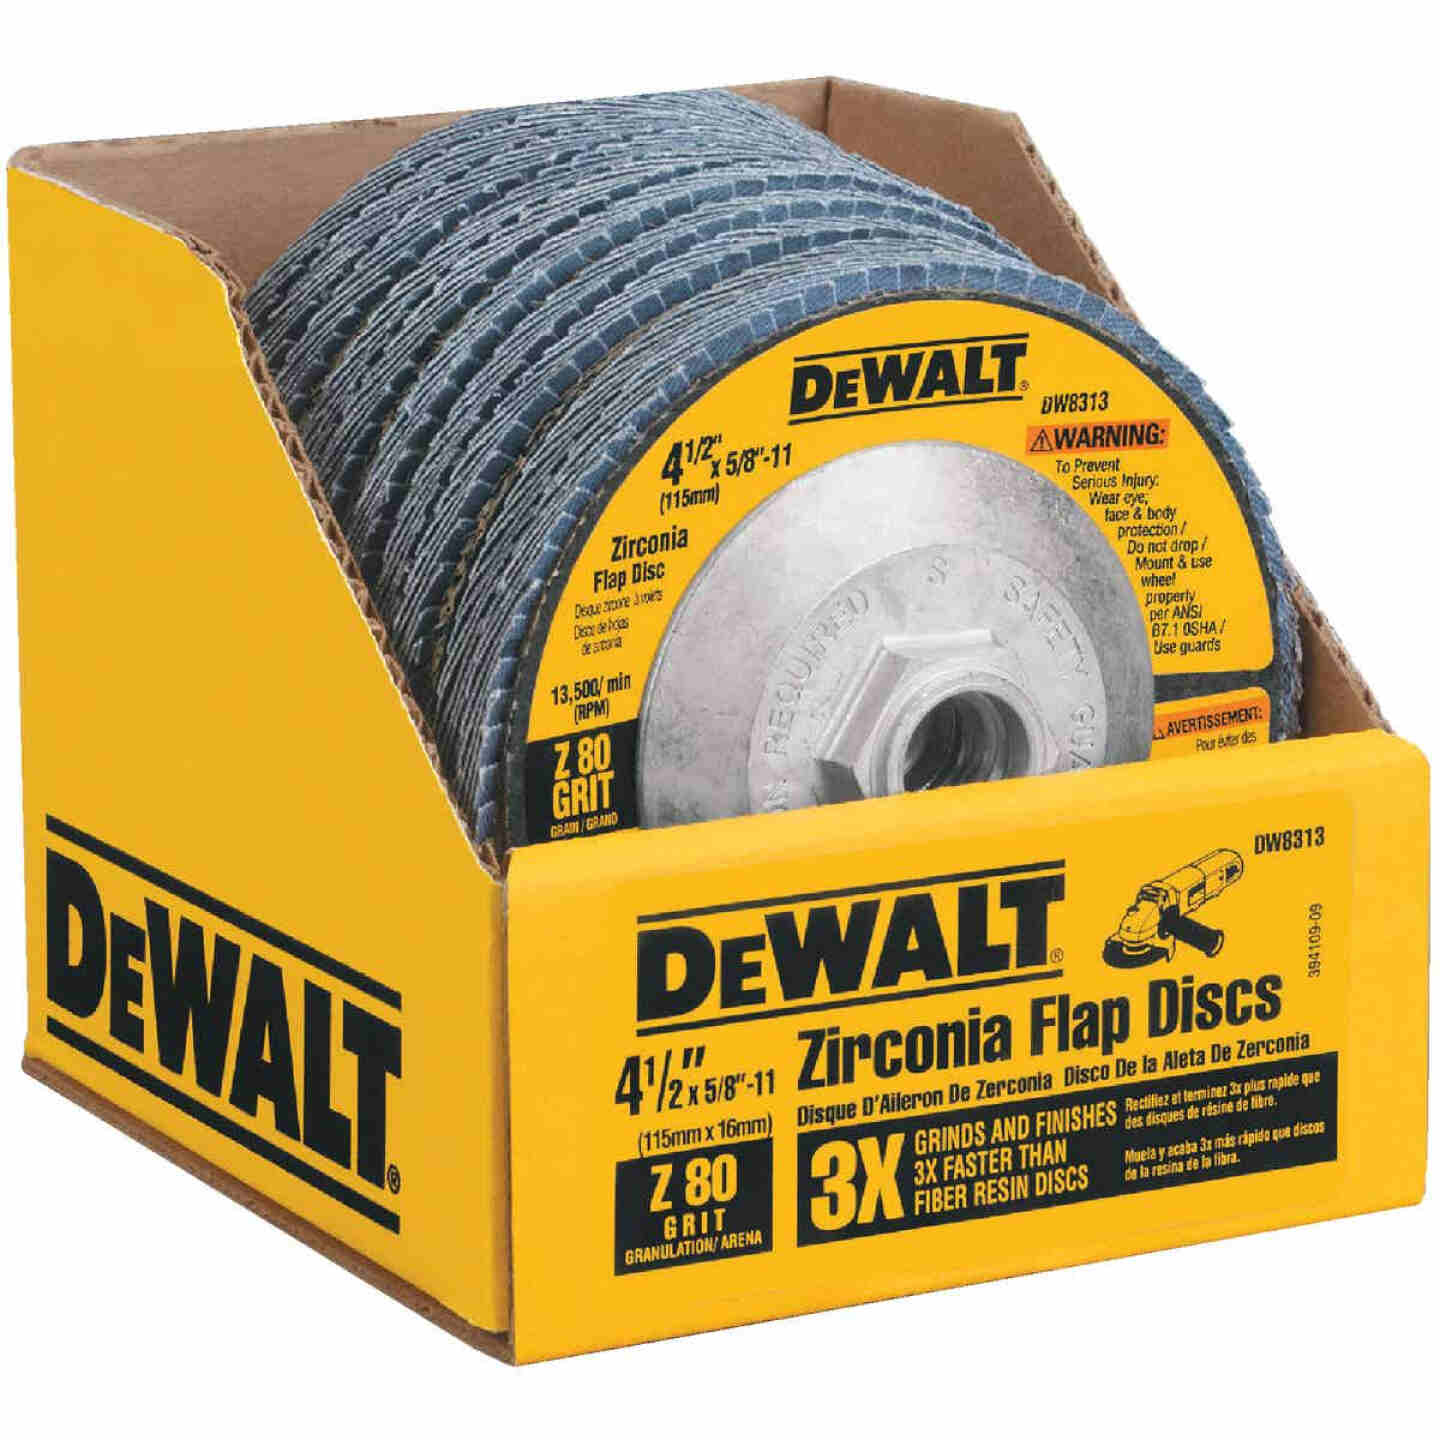 DeWalt 4-1/2 In. 80-Grit Type 29 High Performance Zirconia Angle Grinder Flap Disc Image 1